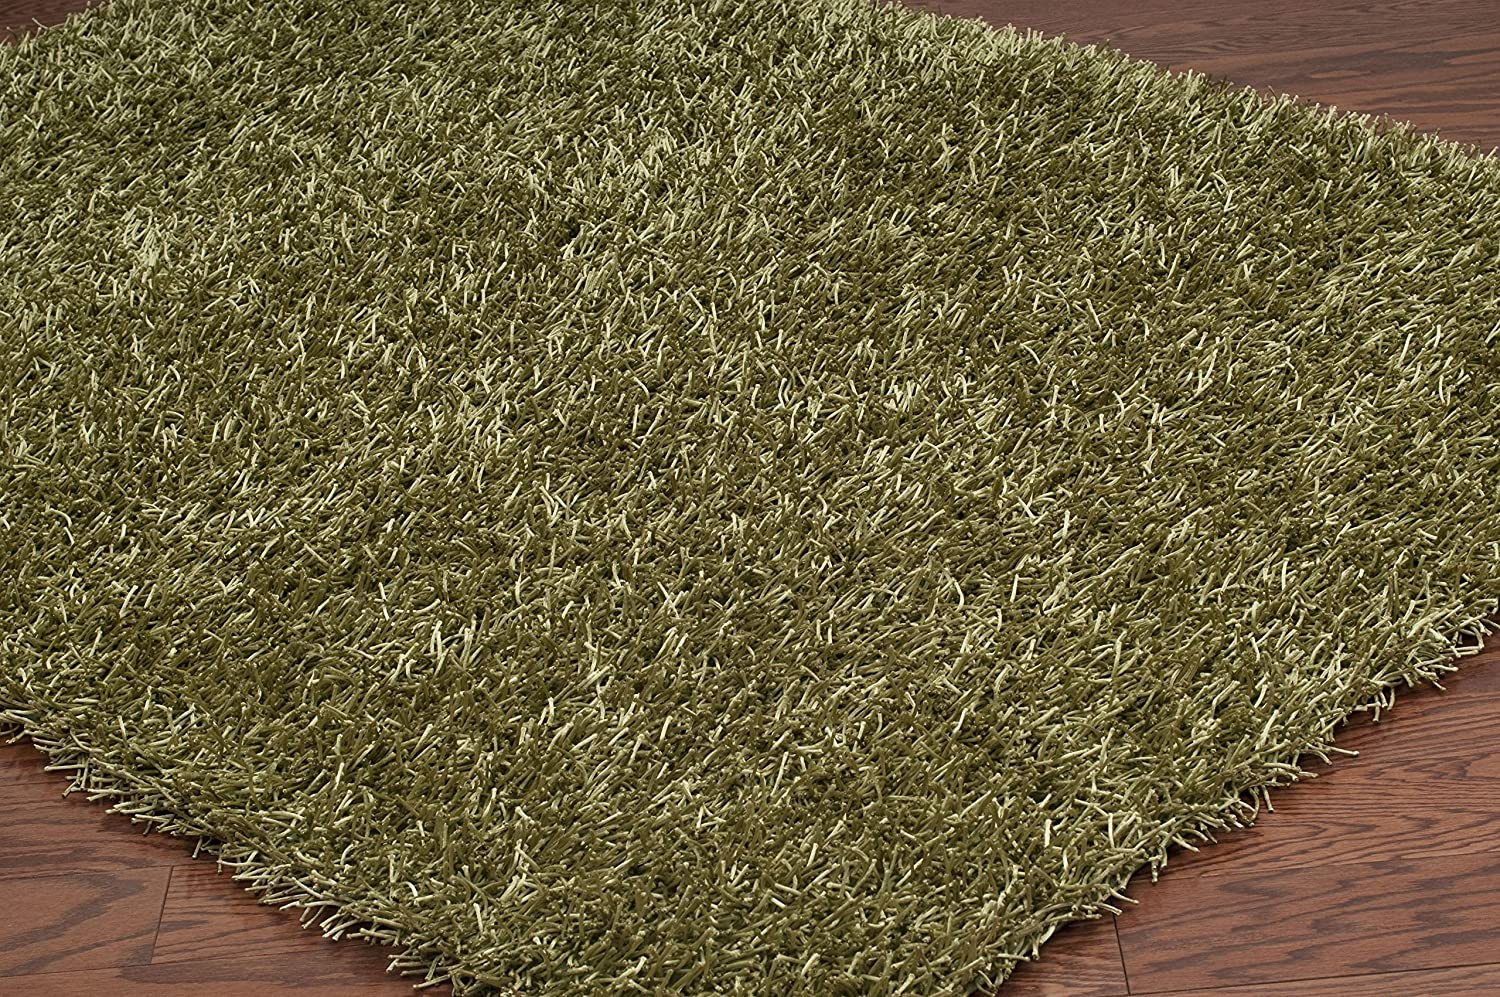 Kempton polyester area rug burgundy merlot colored 3 x3 area rugs - Amazon Com Rizzy Home Kempton Collection Knmkm150800480507 Hand Tufted Area Rug 5 X 7 Green Kitchen Dining